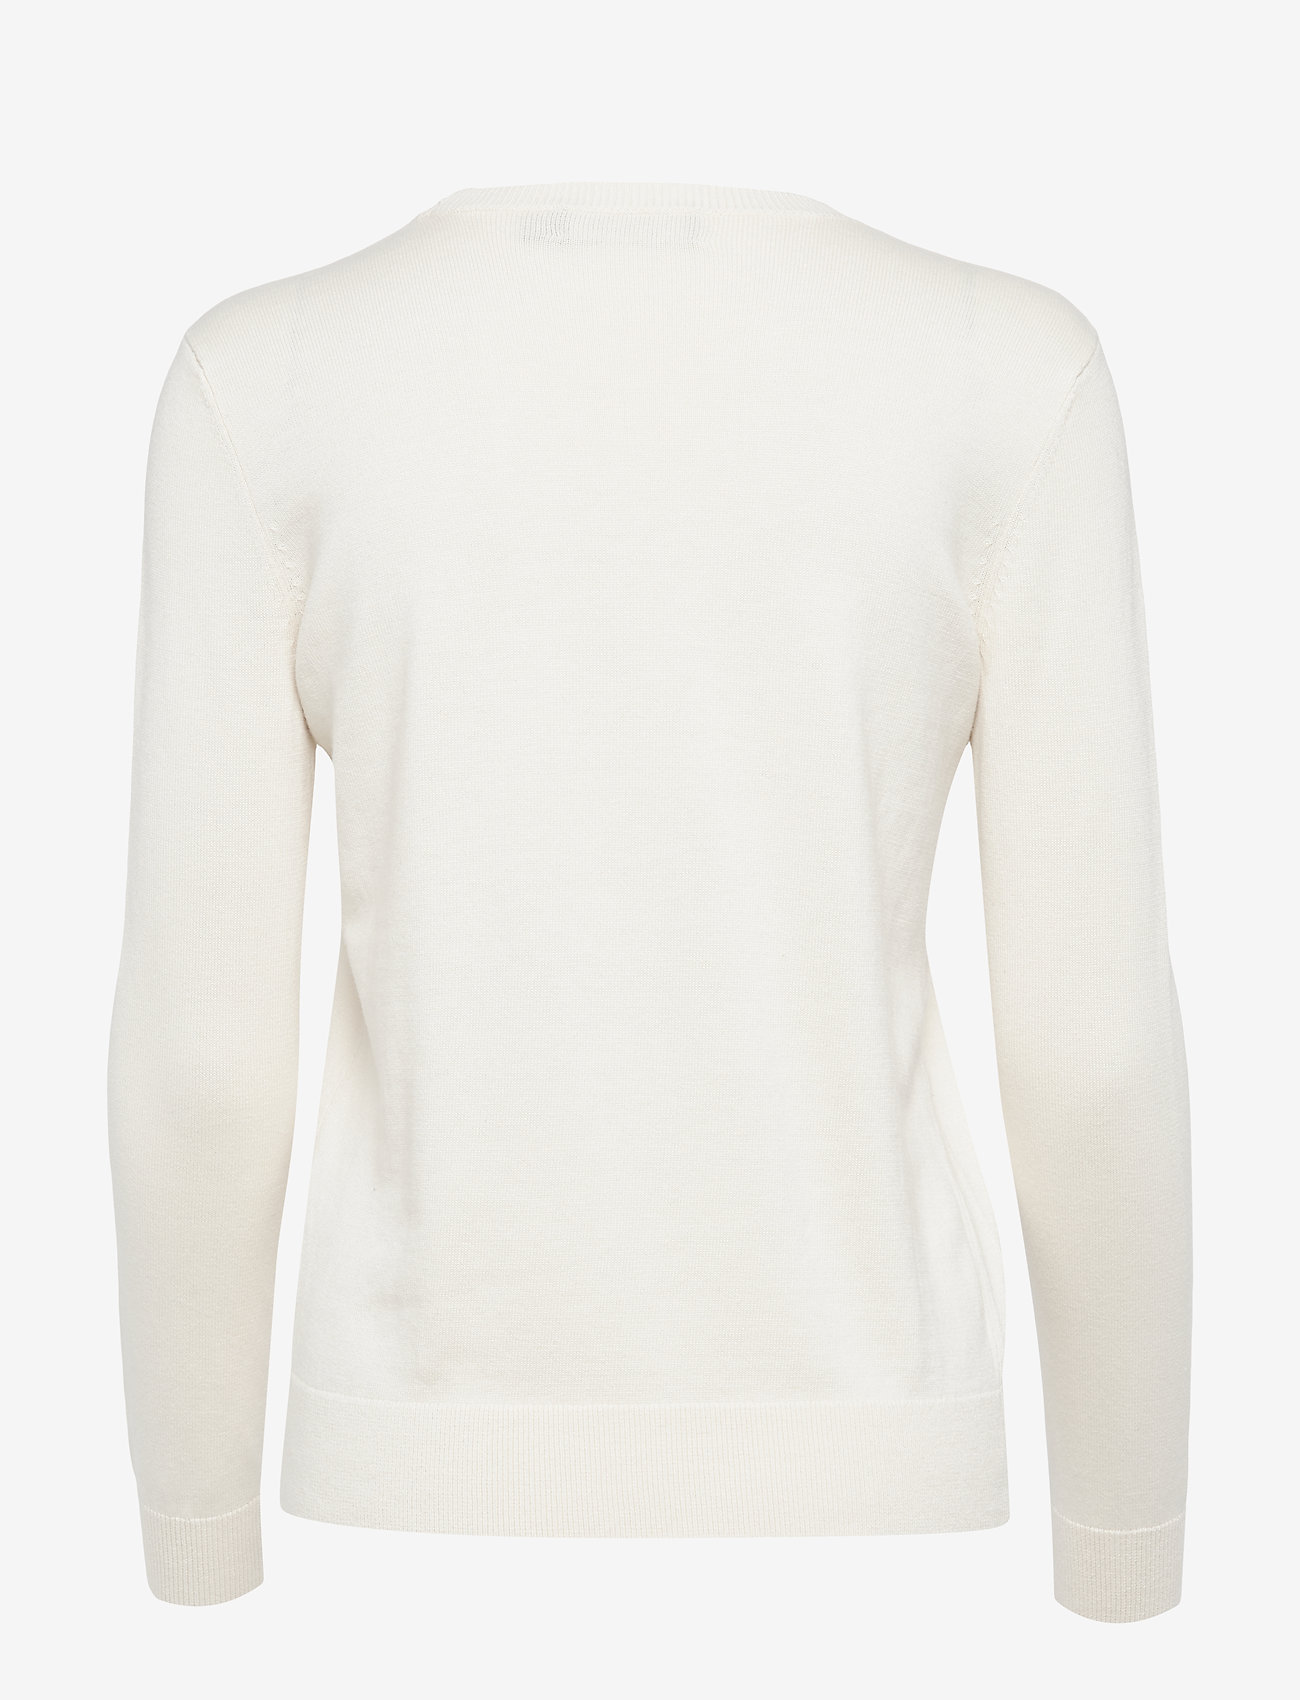 Beaded Logo Sweater (Mascarpone Cream) (979.30 kr) - Lauren Ralph Lauren ODAl2bt7